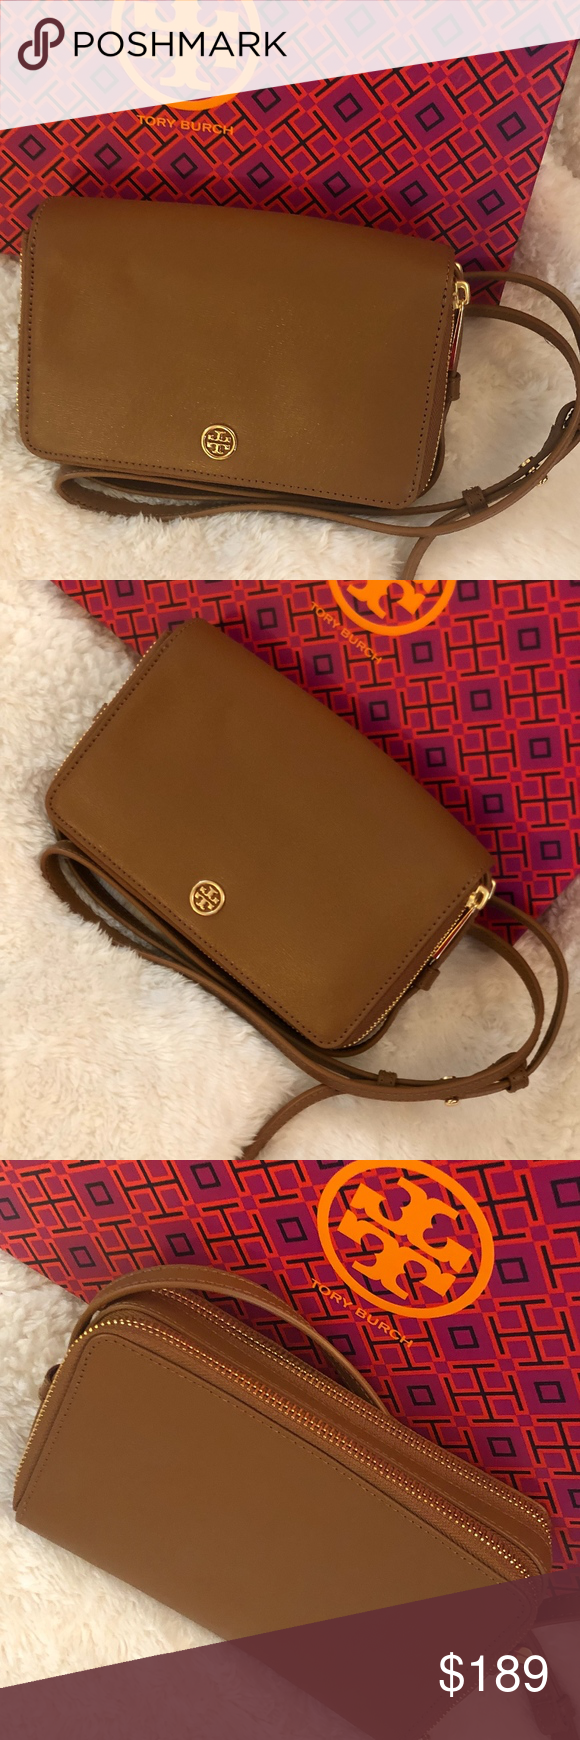 89ca6674a8e NWT TORY BURCH Parker Floral Double Zip Mini Bag NWT TORY BURCH Parker  Floral Double Zip